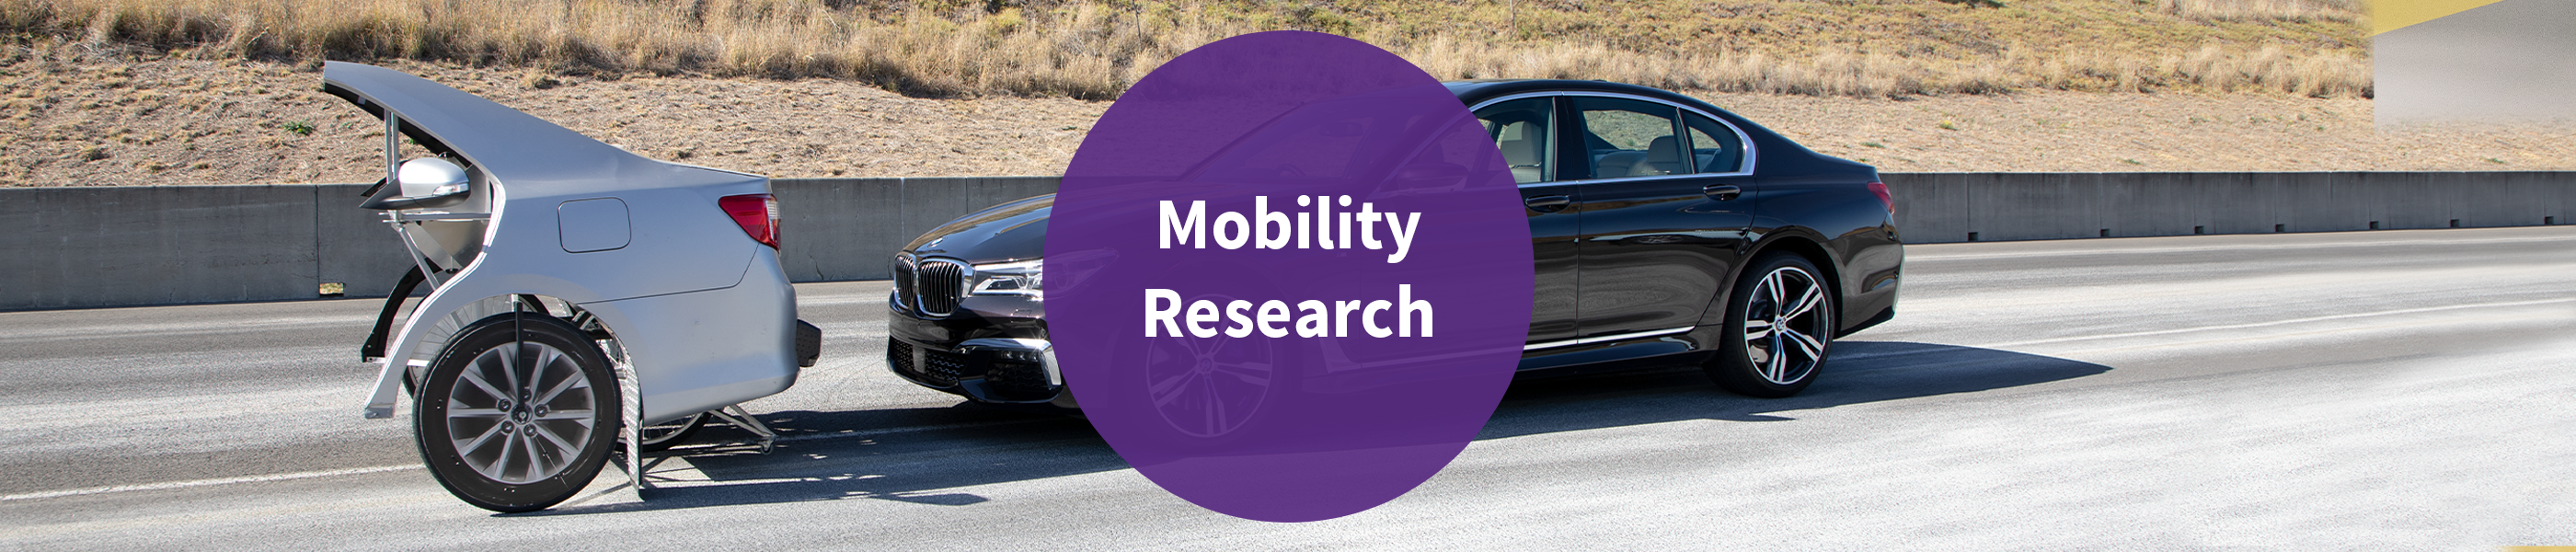 Mobility Research